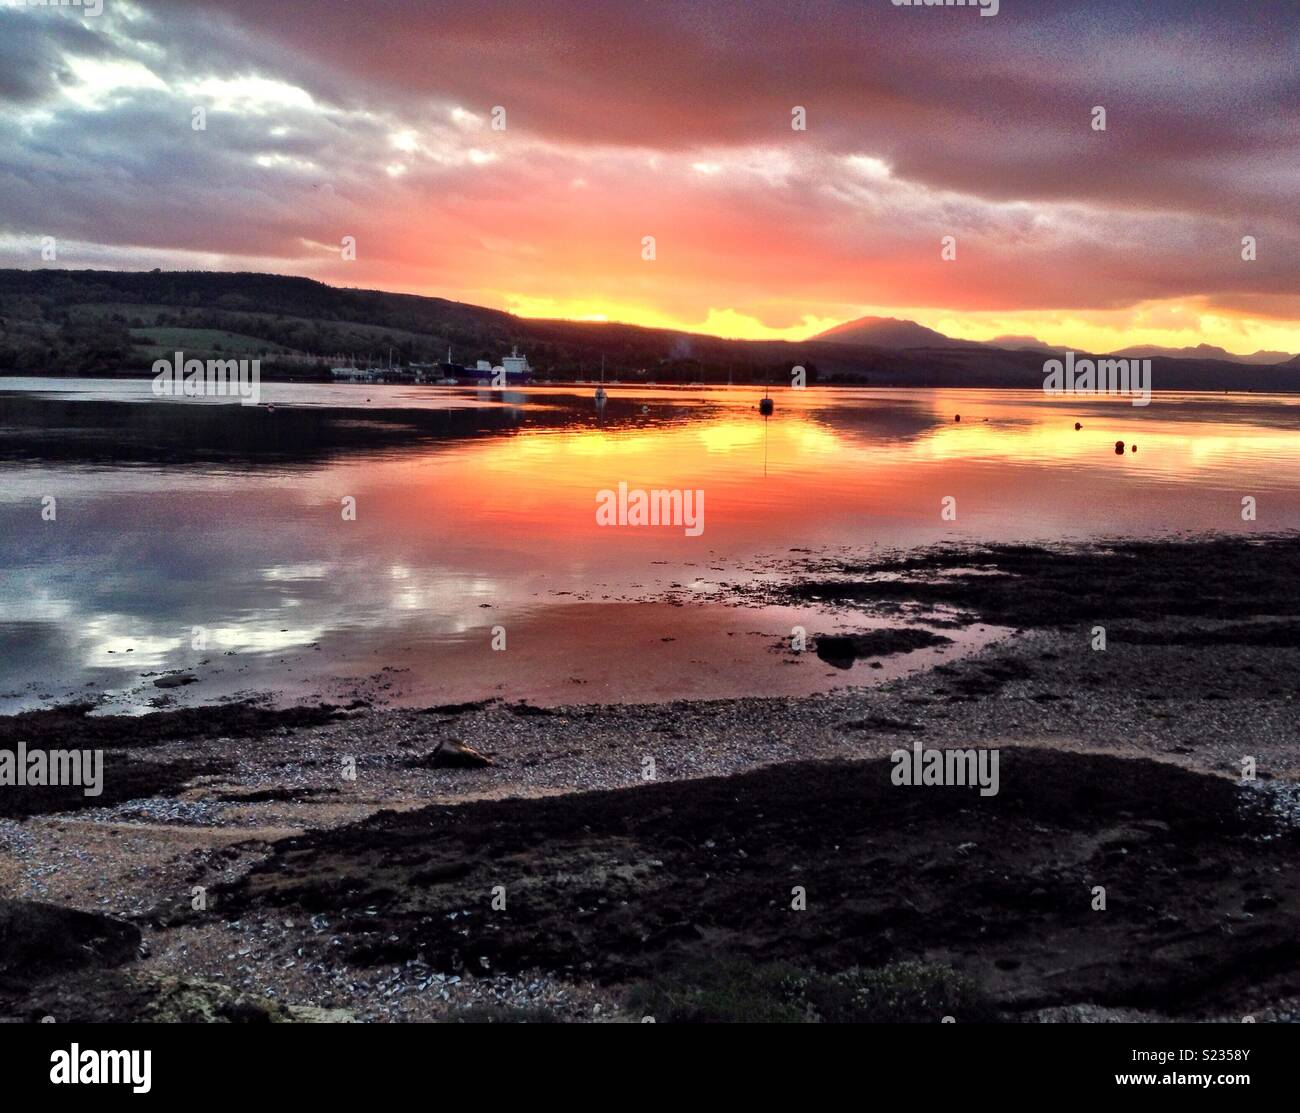 Gareloch in Scotland at sunset. - Stock Image